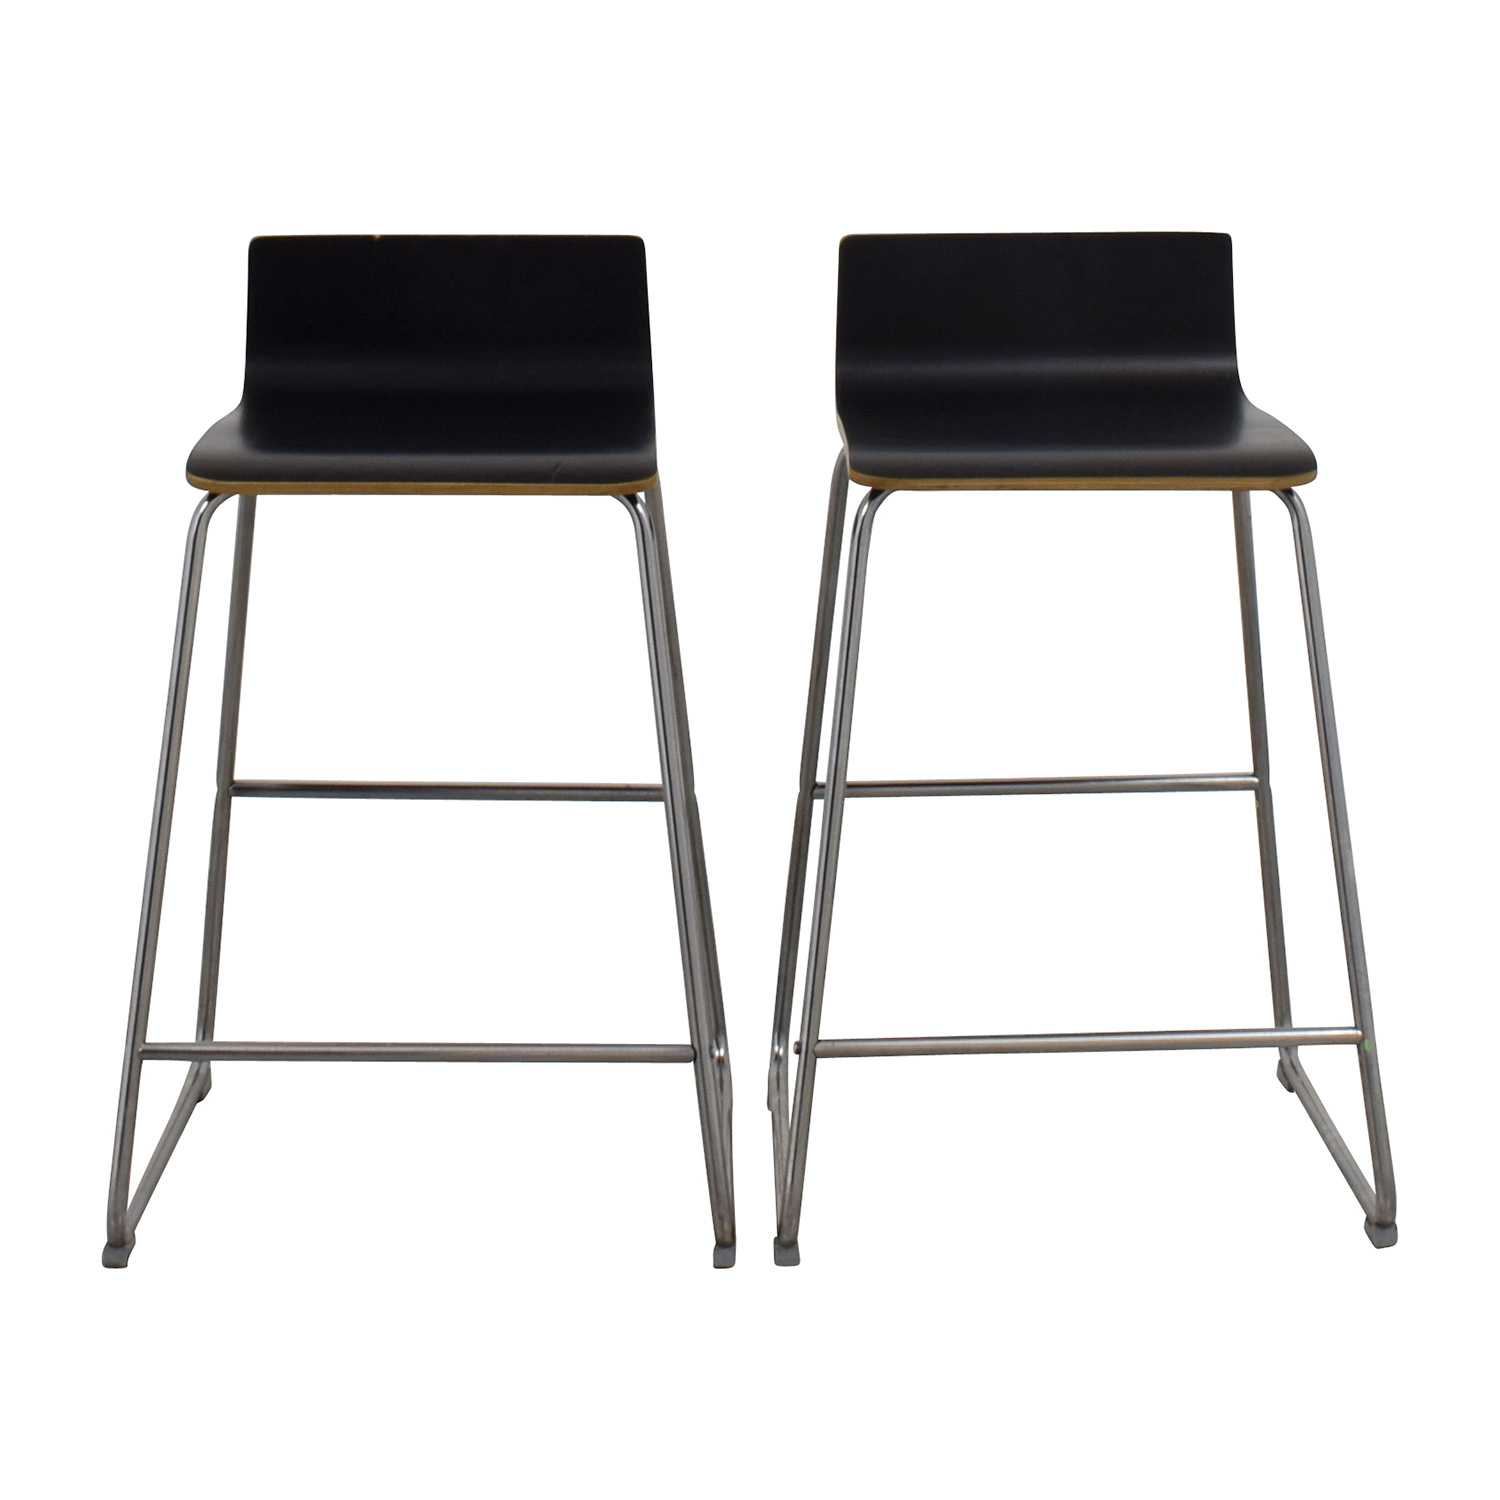 Miraculous 88 Off Ikea Ikea Wood Bar Stools Chairs Ncnpc Chair Design For Home Ncnpcorg